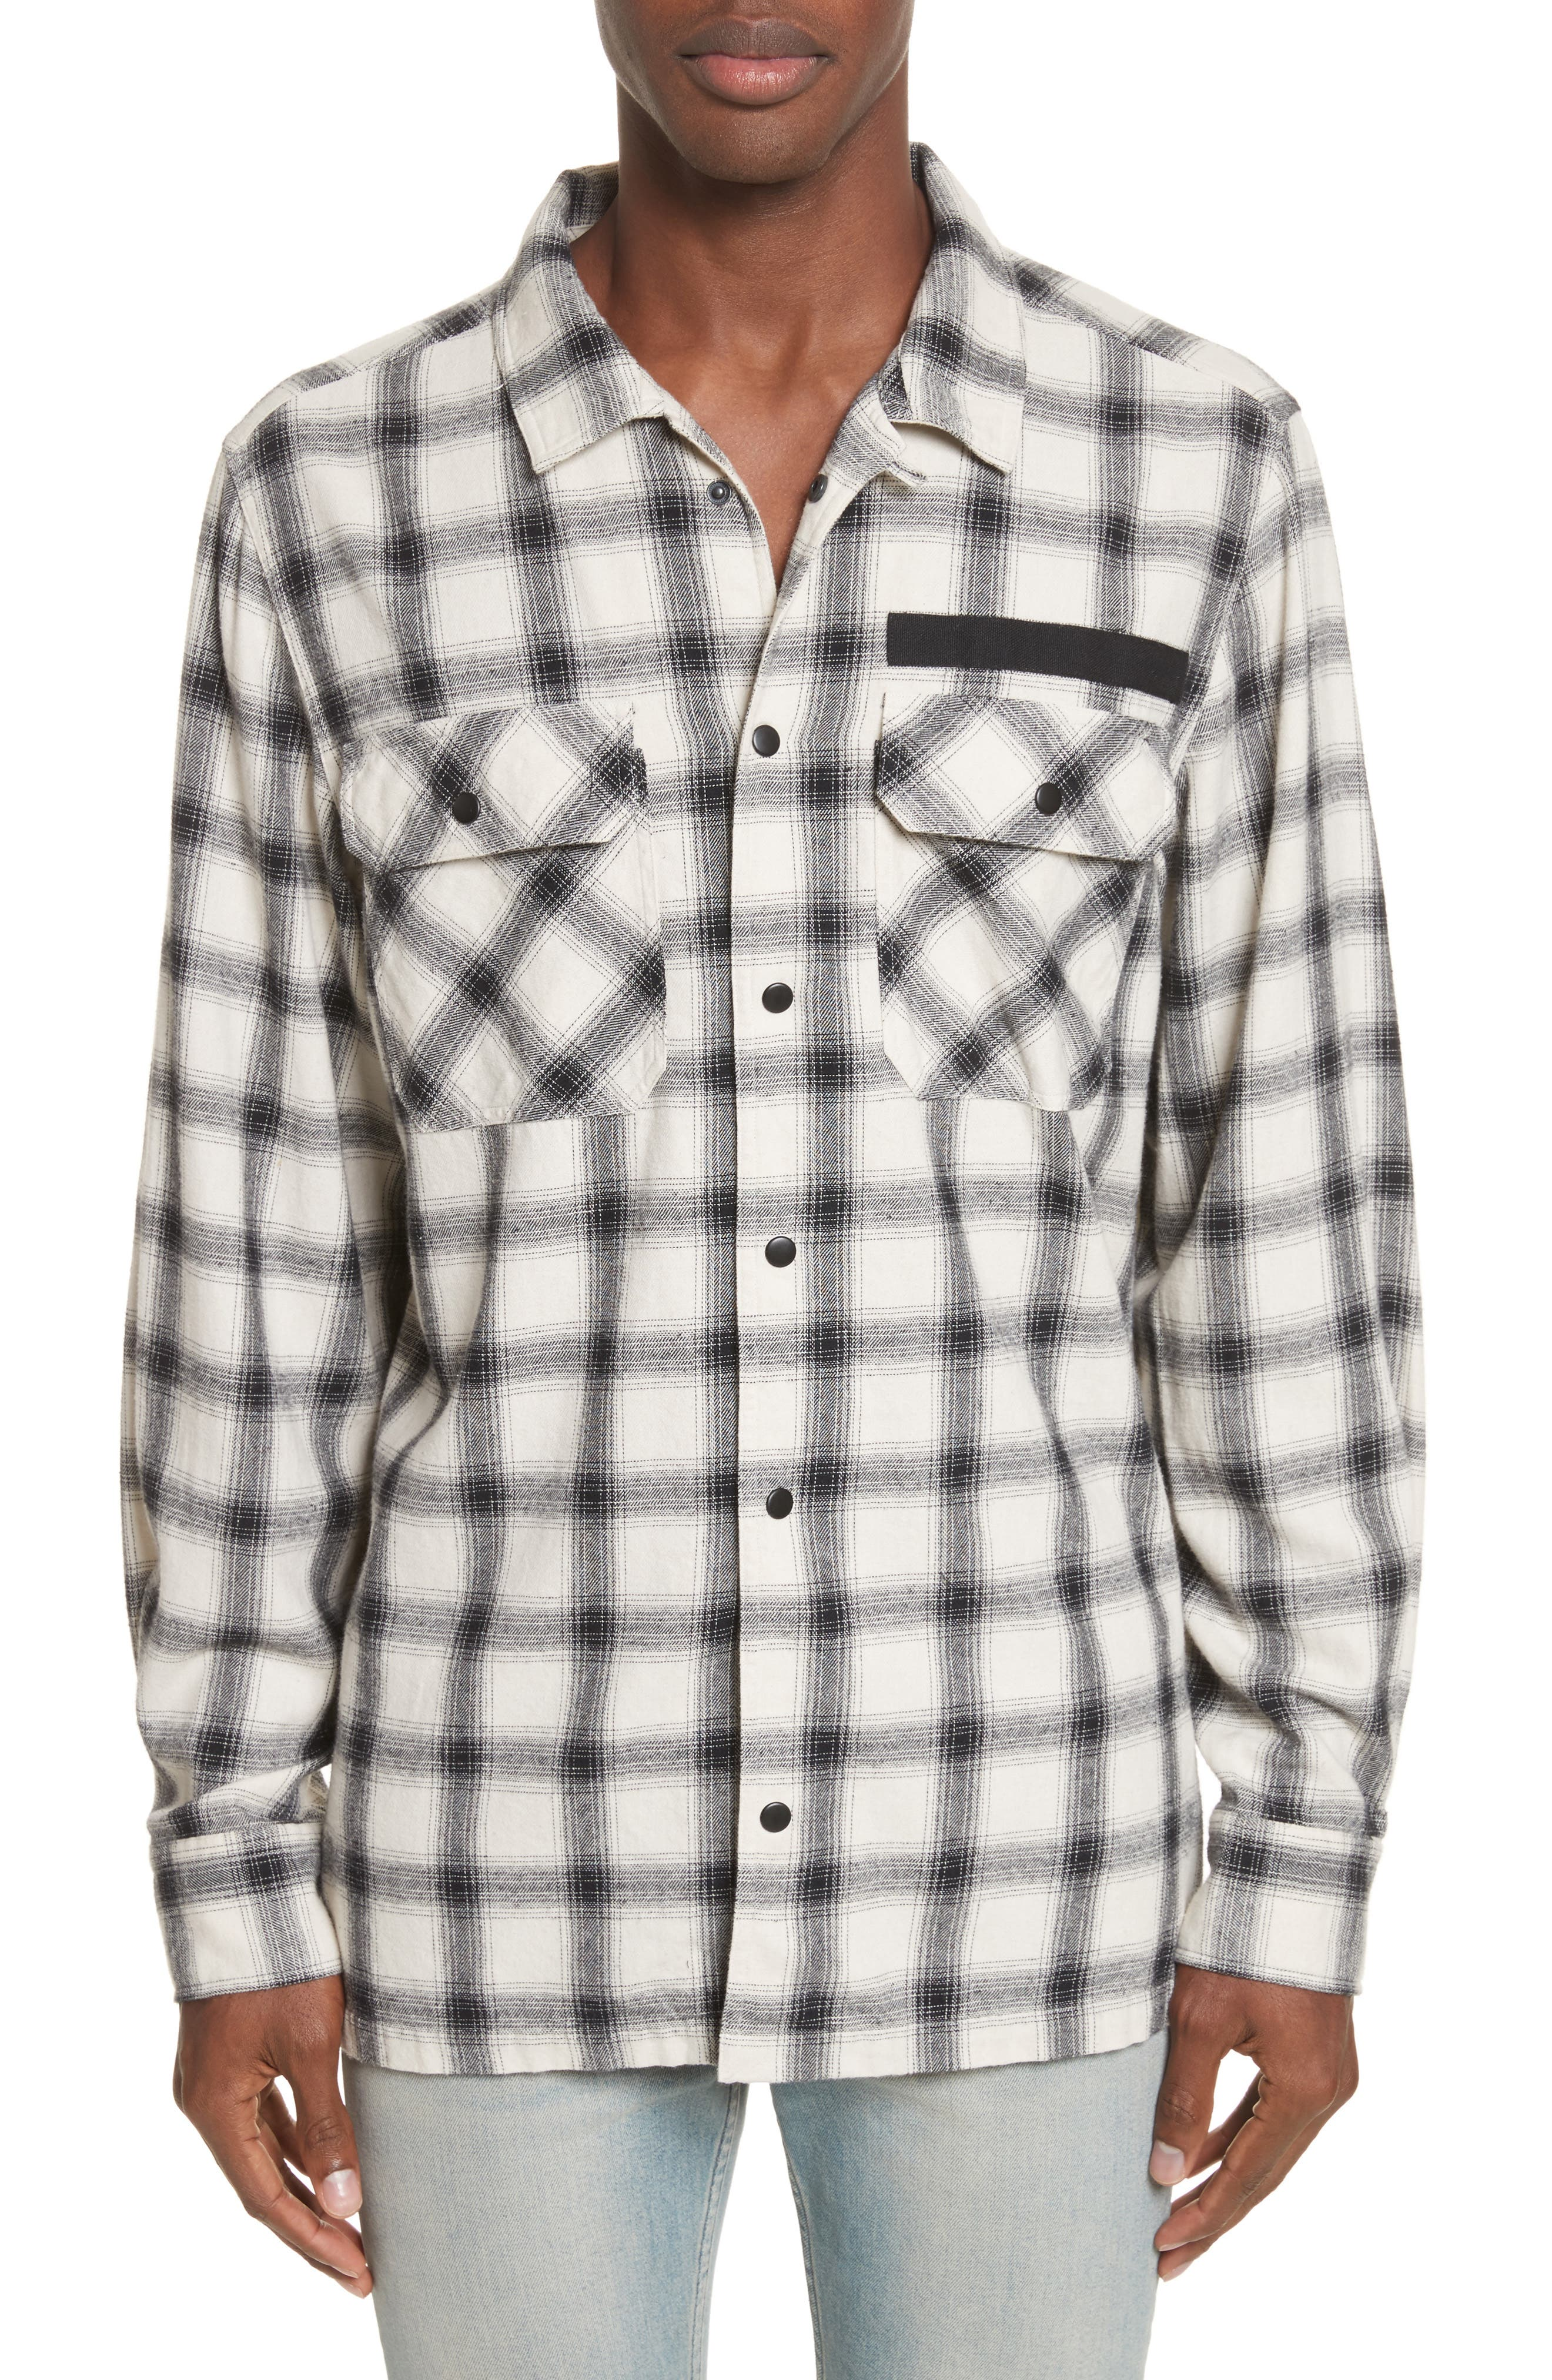 OVADIA & SONS Oversize Plaid Military Shirt, Main, color, WHITE/ BLACK